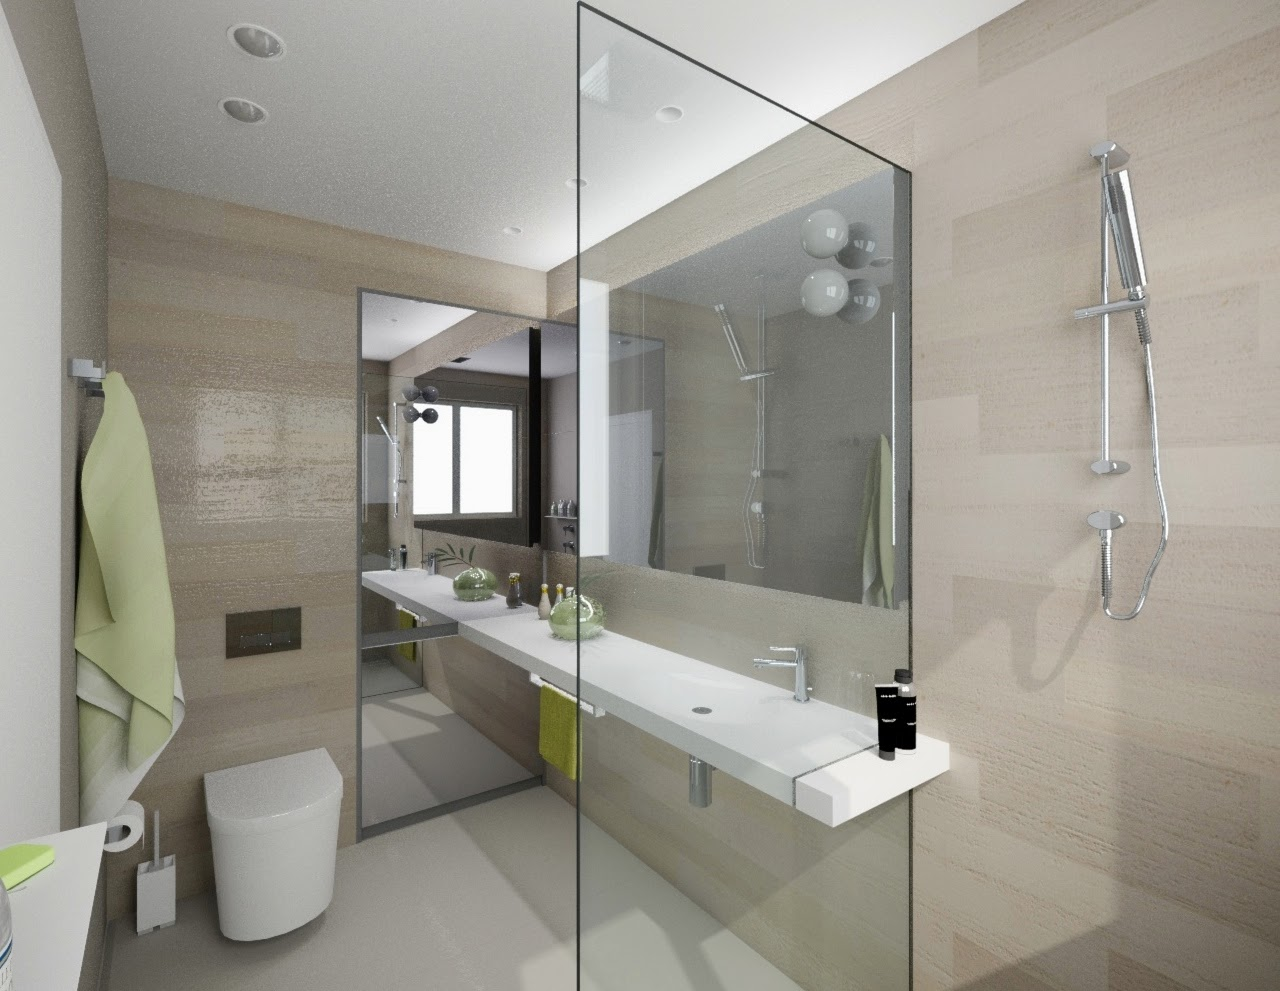 Minosa bringing sexy back the modern bathroom for Modern bathroom design ideas small spaces